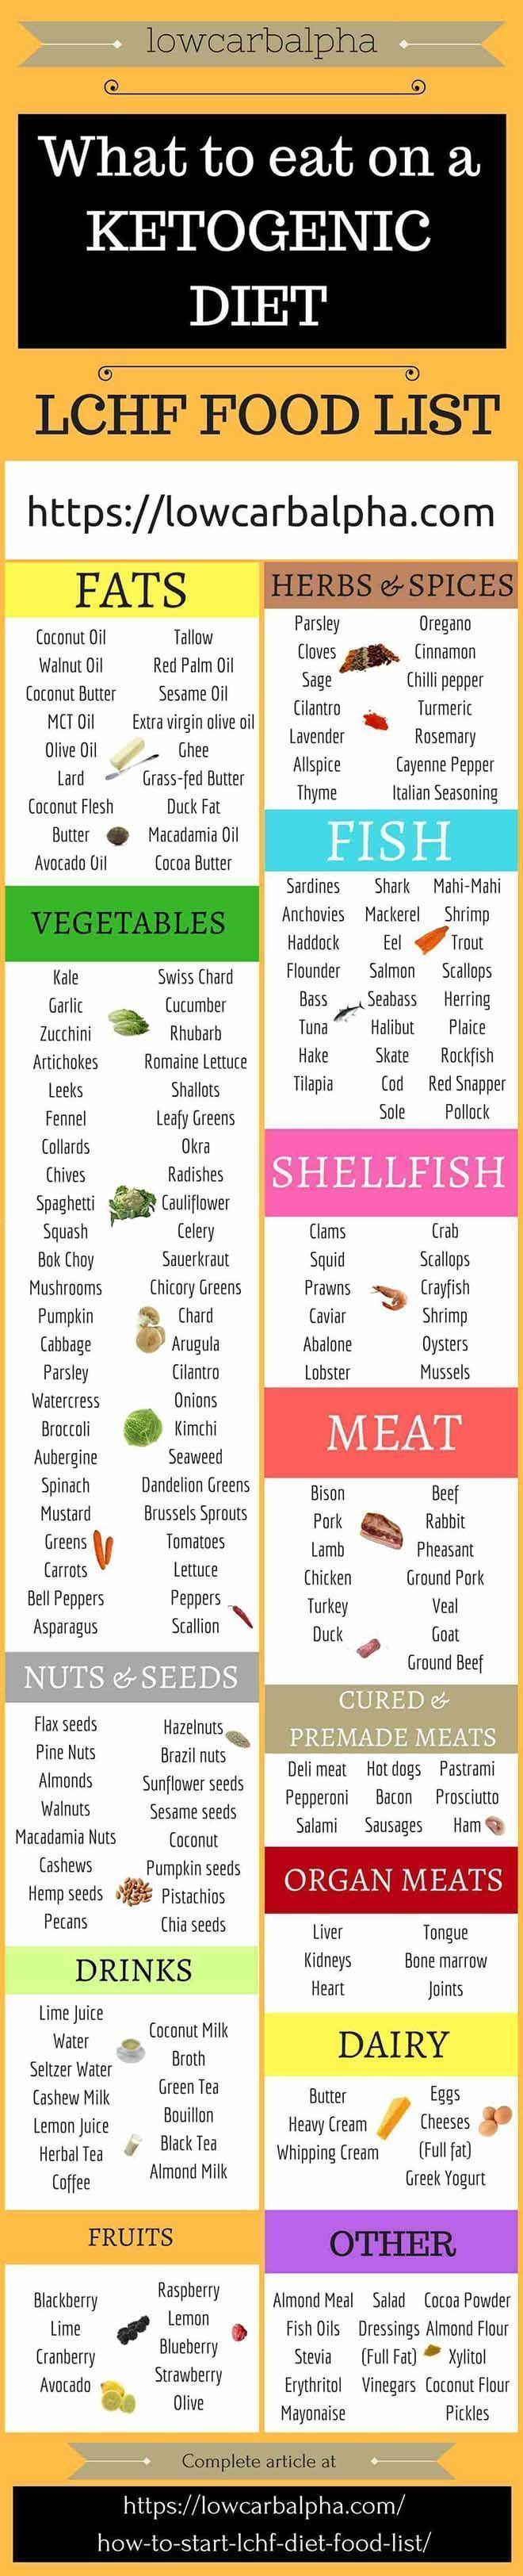 How to start LCHF diet food list #cleaneatingdietlosingweight #LOWCARBOHYDRATEDIET